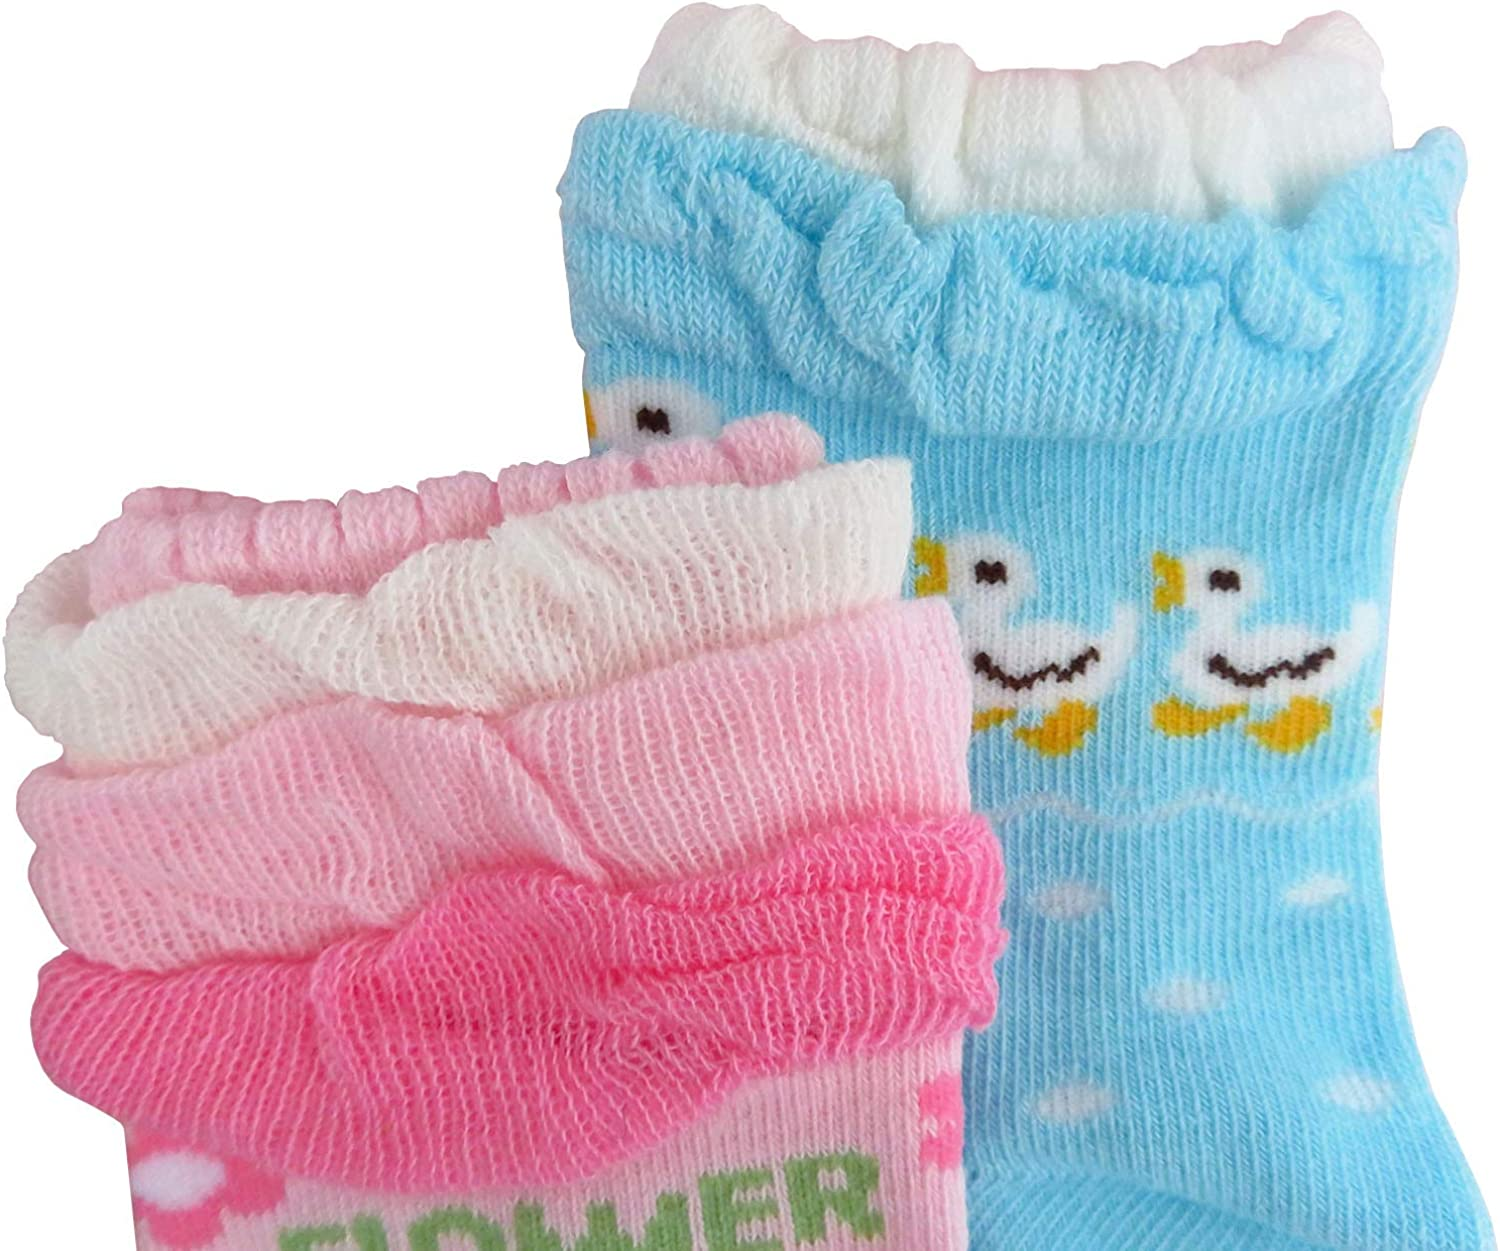 JIEEN Baby Girls Cute Cartoon Socks Non-skid Lace Colorful Sports Ankle Crew Socks Princess